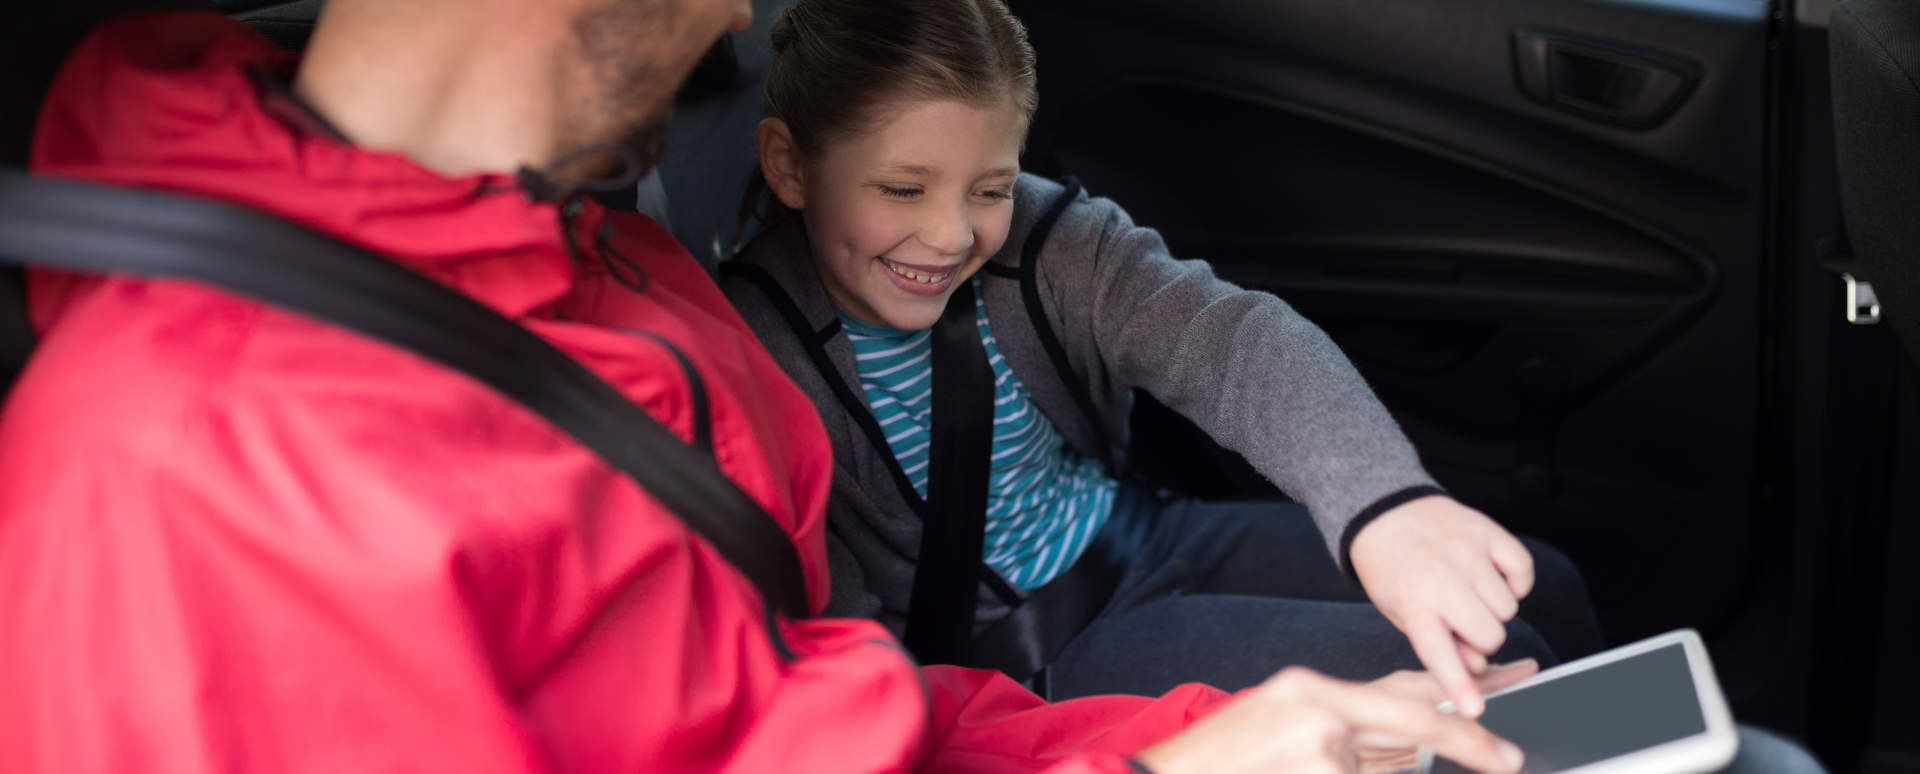 Child with Seatbelt on Playing with iPad